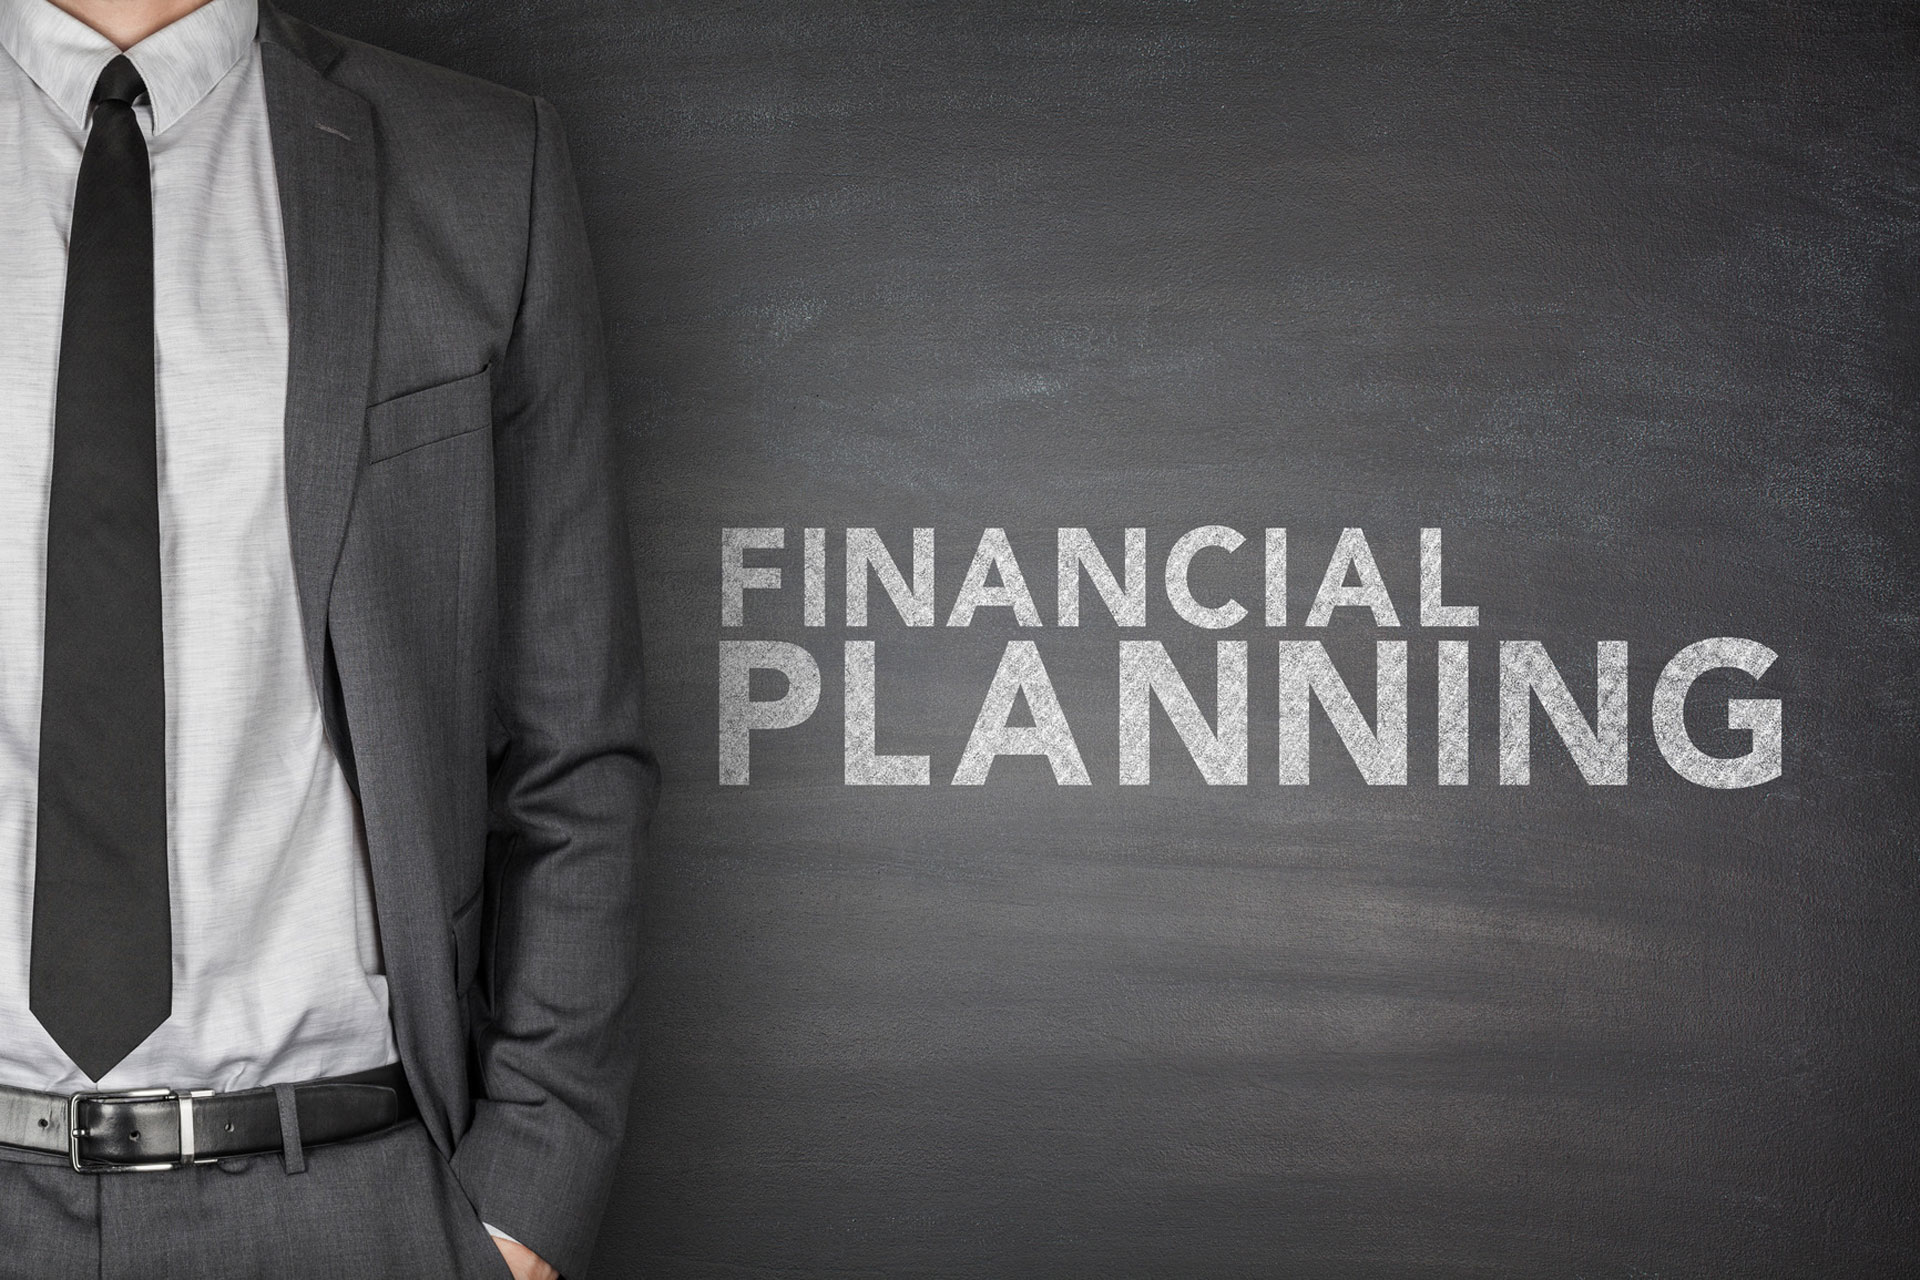 financial-planning-text-on-black-blackboard-m